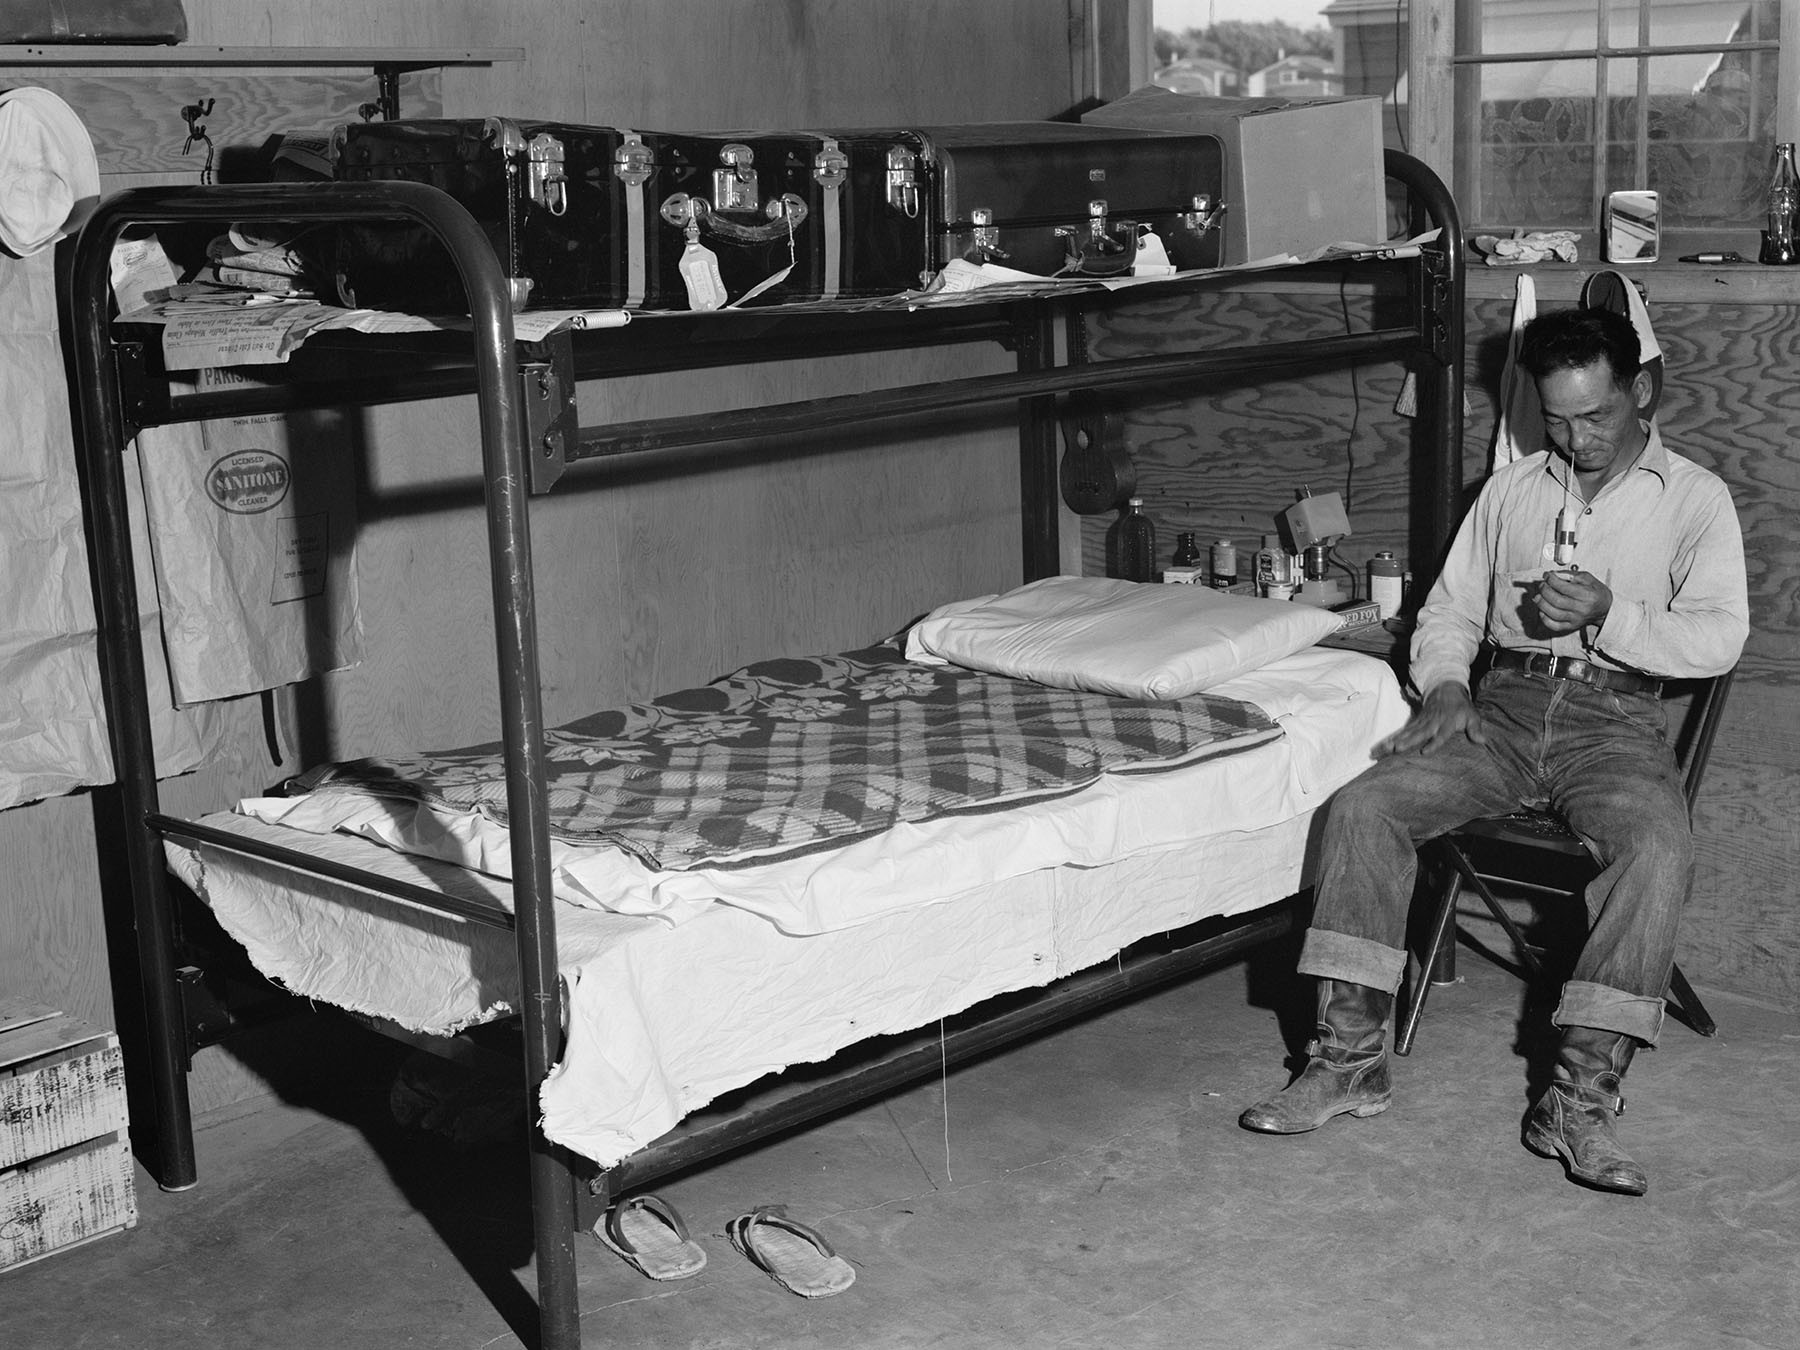 A 1942 photo of a barrack in the Twin Falls, Idaho, camp. Every barrack was divided into six apartments, each 14 feet by 16 feet. A typical apartment contained two pairs of bunk beds and a table with chairs.